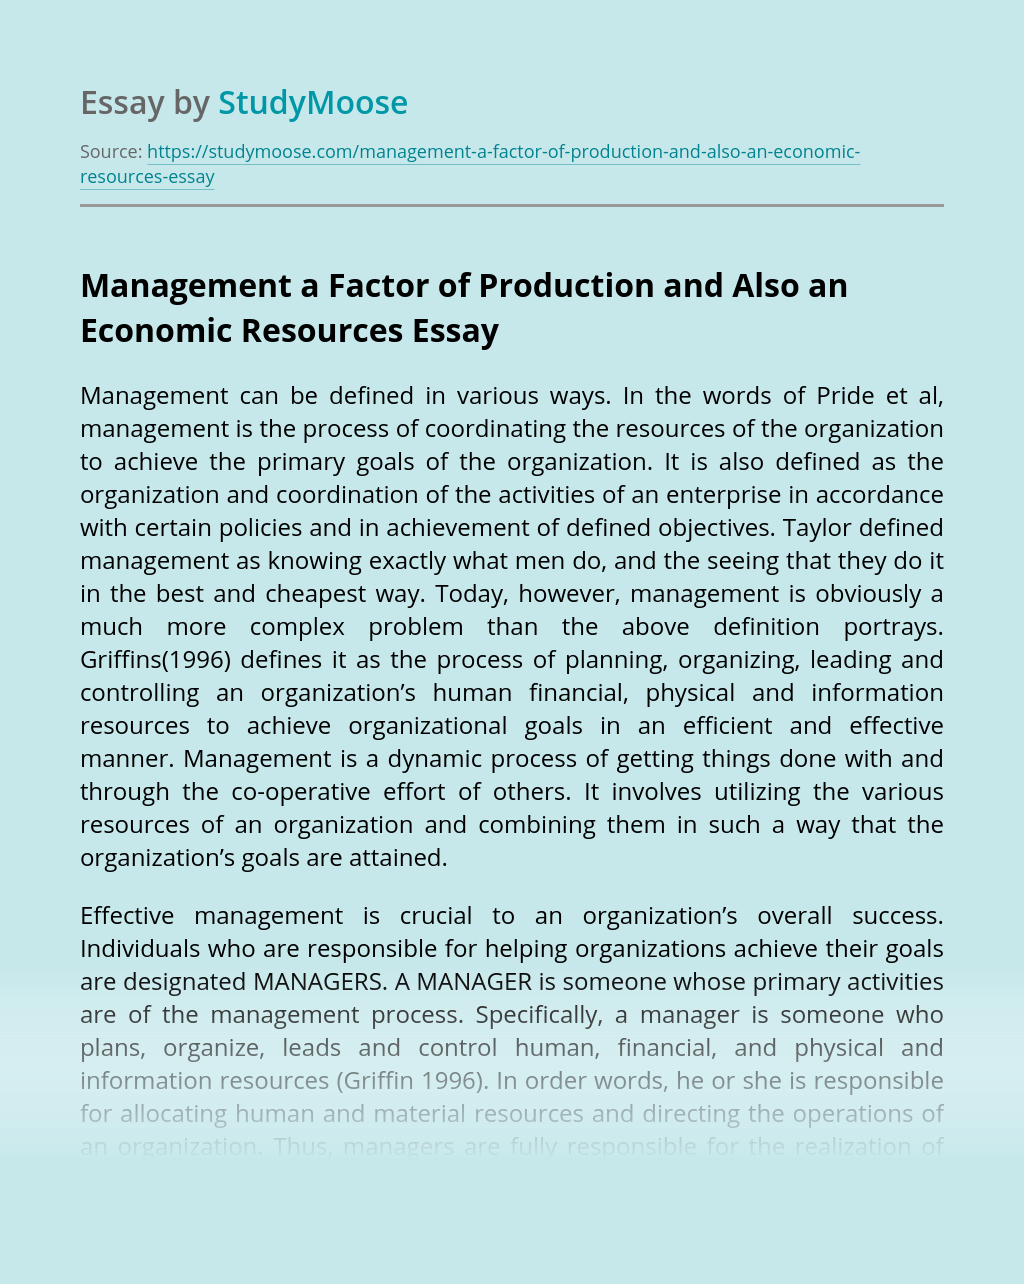 Management a Factor of Production and Also an Economic Resources